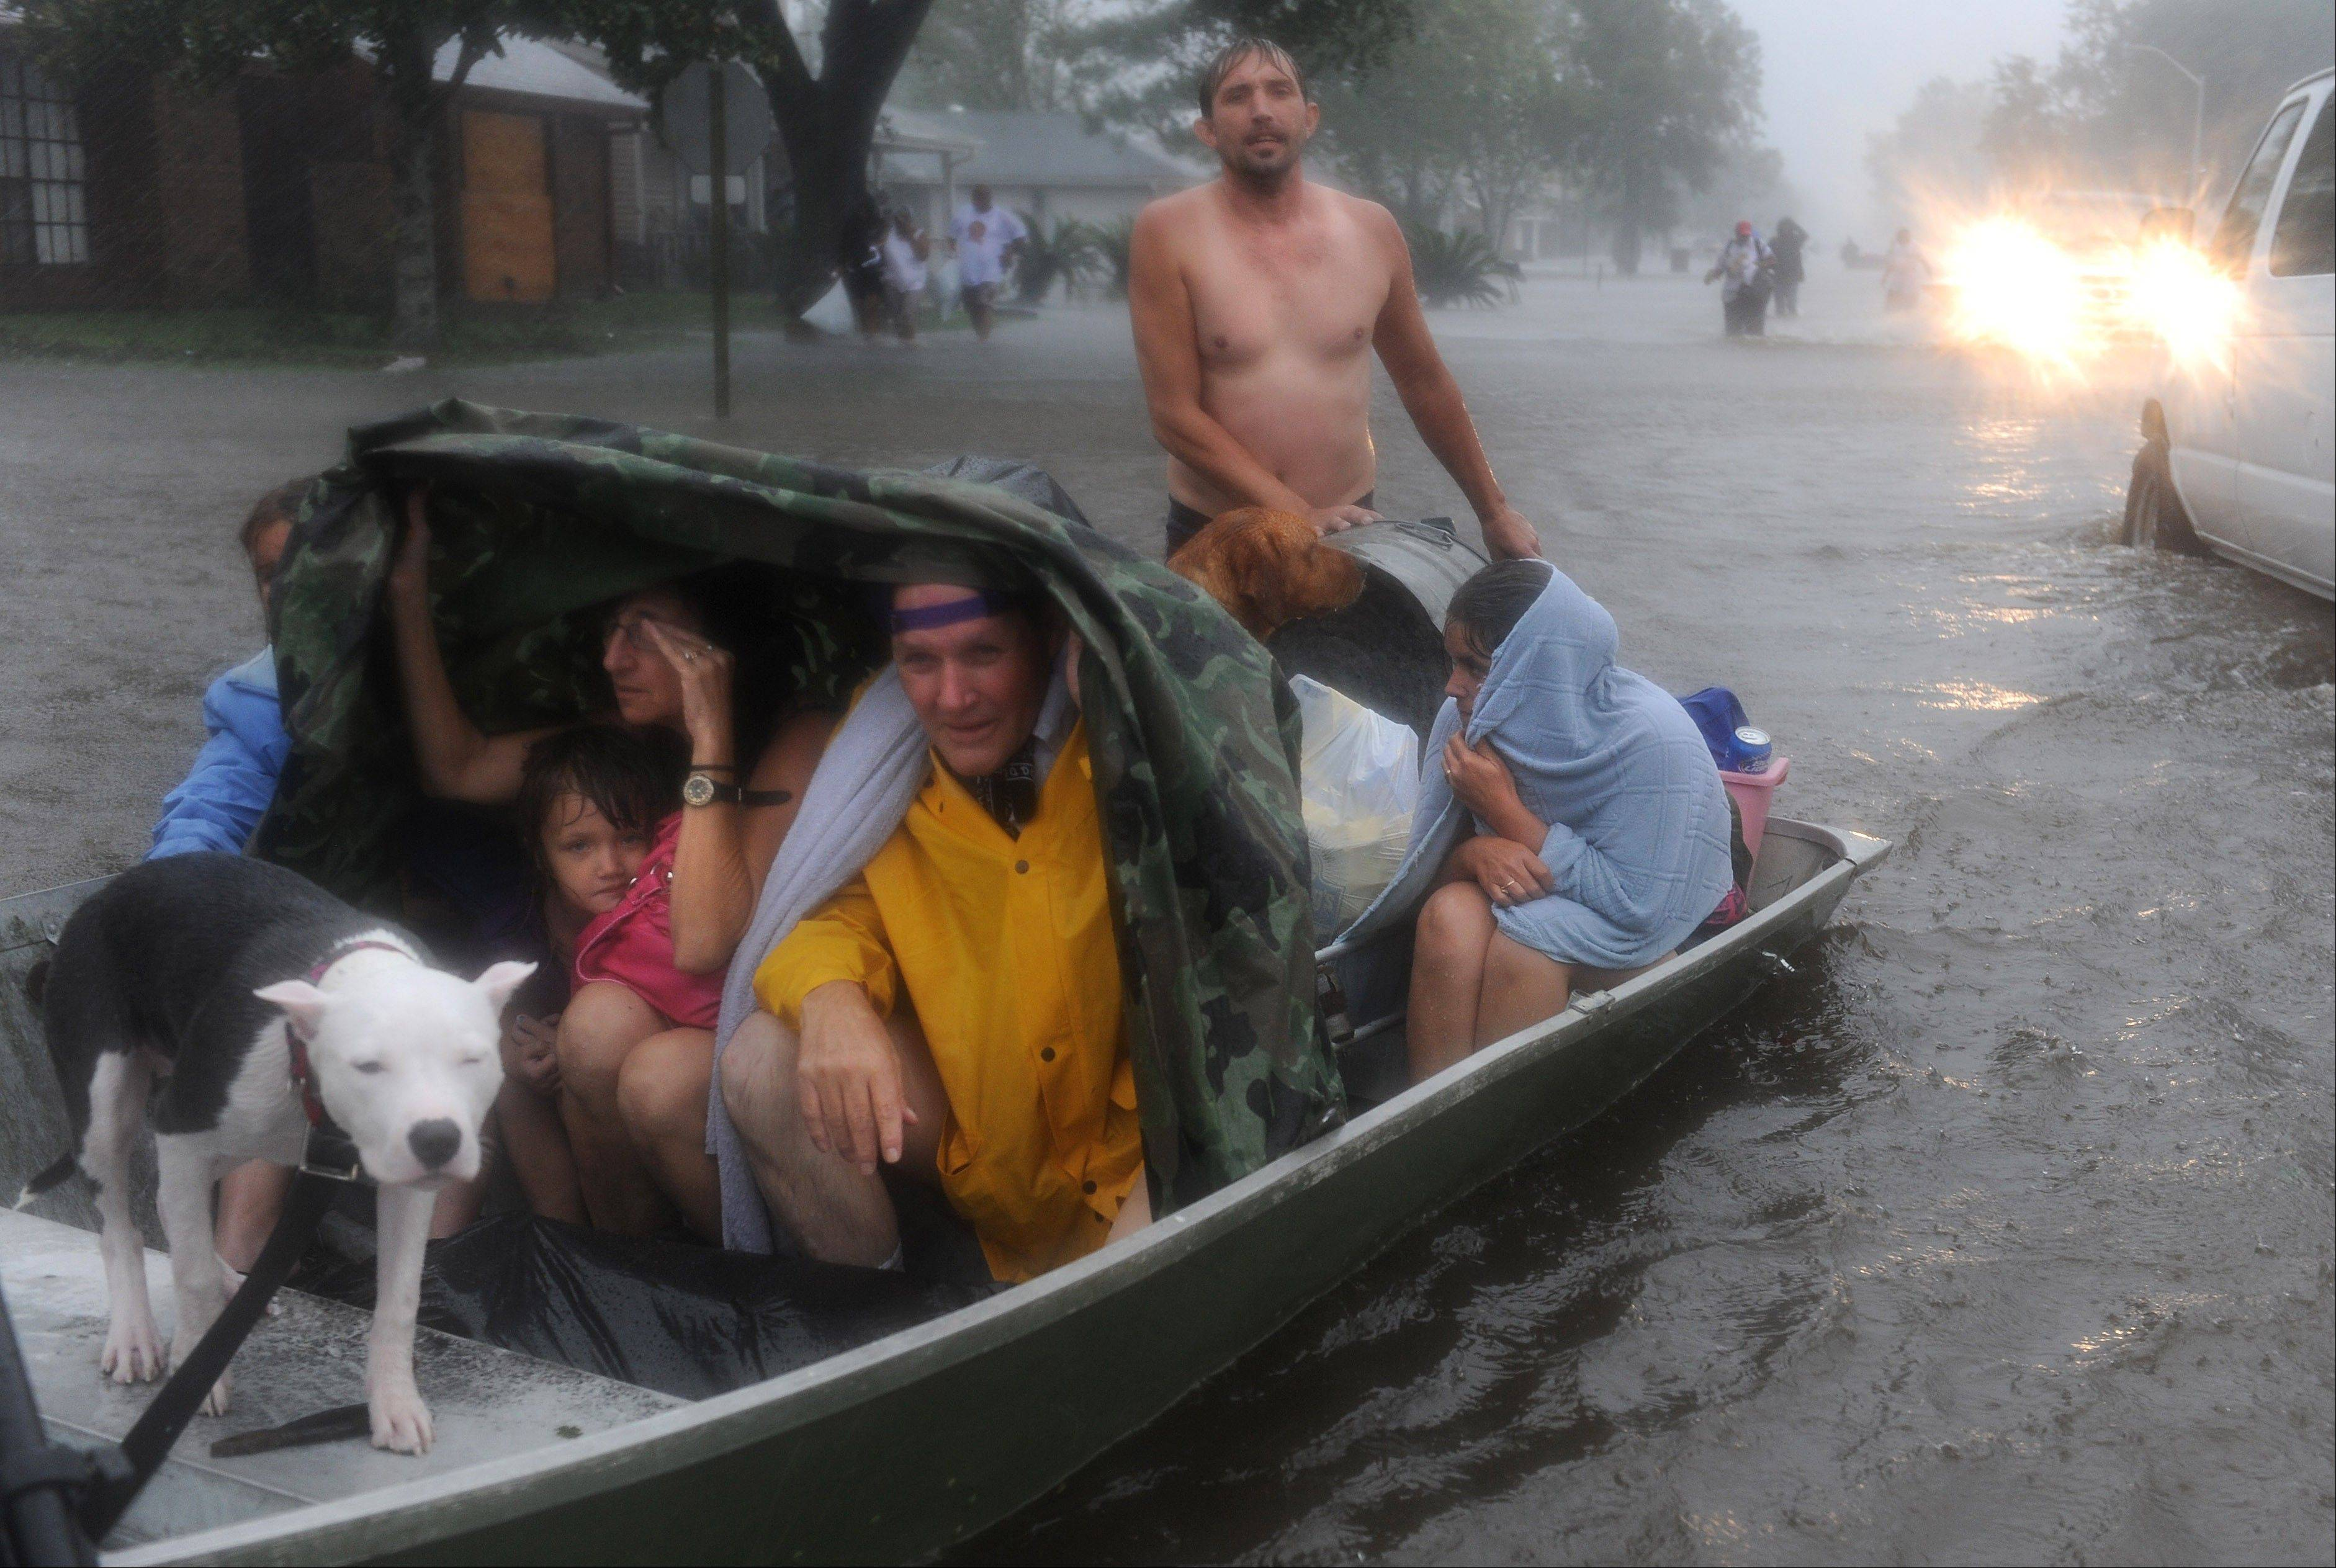 Residents of the Cambridge Neighborhood of LaPlace Louisiana flee rising floodwaters associated with Hurricane Isaac Wednesday.